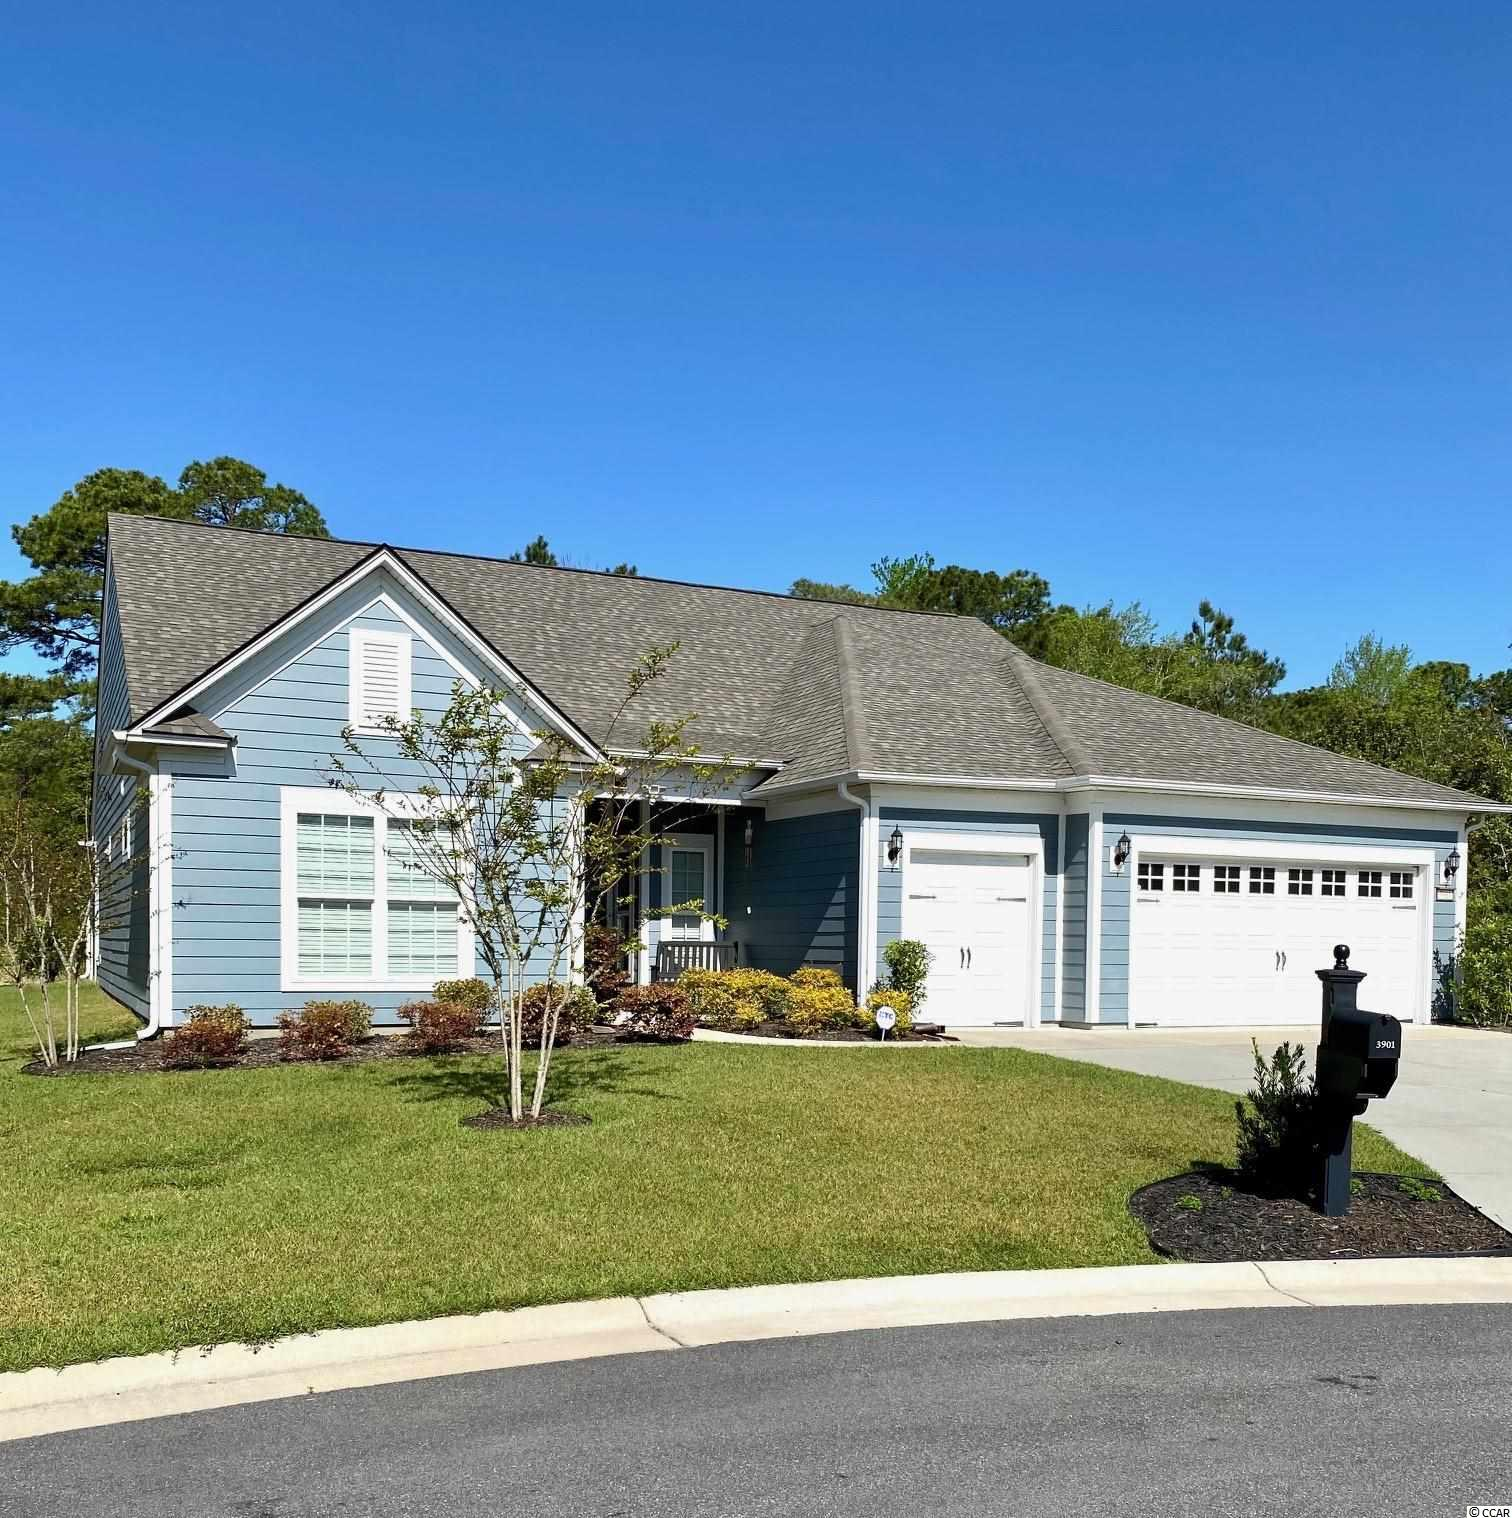 4 year like new, popular Dunwoody Way Floorplan in the exclusive, gated section of Amherst in Berkshire Forest.  UPGRADES GALORE!  Hardie Plank, 30 yr architectural shingles, radiant barrier roofing, Gutters, Gourmet Kit w/ 5 burner gas cooktop, microwave, wall oven combo, french door refrigerator, Stainless Appl., Vent Hood, Pantry, Pendant Lights, Granite countertops & Farm Sink.  Oil Rubbed Bronze Lever Door Handles, Faucets & Accessories. Wide Plank Hwds, Tile, Gas FP, 5 Ceil. Fans, Bonus Rm. 3 Car Gar w/ workbench & built-ins, Lau/Mud Rm. w/ Washer/Dryer, Built-In Drop Center, Cabinets & Lau Sink., Irrigation System, Great Rm, Sunroom, Screen Porch w/ Custom Privacy Shades, Extended Patio, 3 BR's, 3Full Baths, Office, Crown Molding, Private Lot w/ trees in back and side, Security System & Flood Lights. MBR w/ Tray Ceil, MBath w/ Dbl Sinks, Makeup Vanity, Huge Shower w/ Tile to the ceil, Walk-In Closet w/Built Ins, Firepit, Gas Grill Hookup, Wainscotting, Upgraded Front Door.  Amenity Center, Swimming Pool, Dock, Beautiful Lake, Tennis & Basketball.  Only home for sale in Gated Section at time of listing.  One look and you are going to want to make it YOUR HOME!